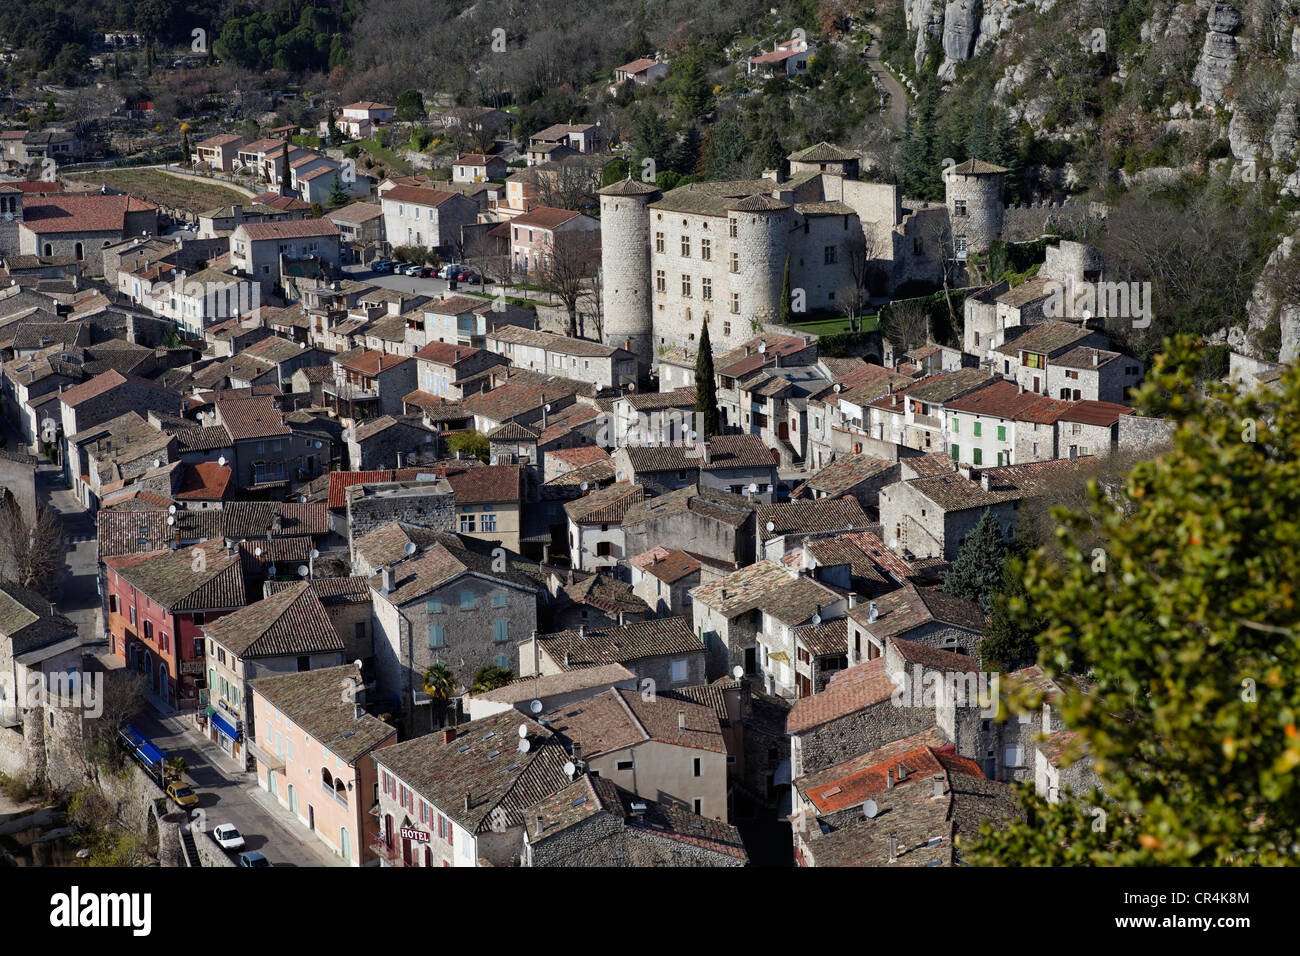 Village de Vogue, intitulée Les Plus Beaux Villages de France, Les Plus Beaux Villages de France, la vallée Photo Stock